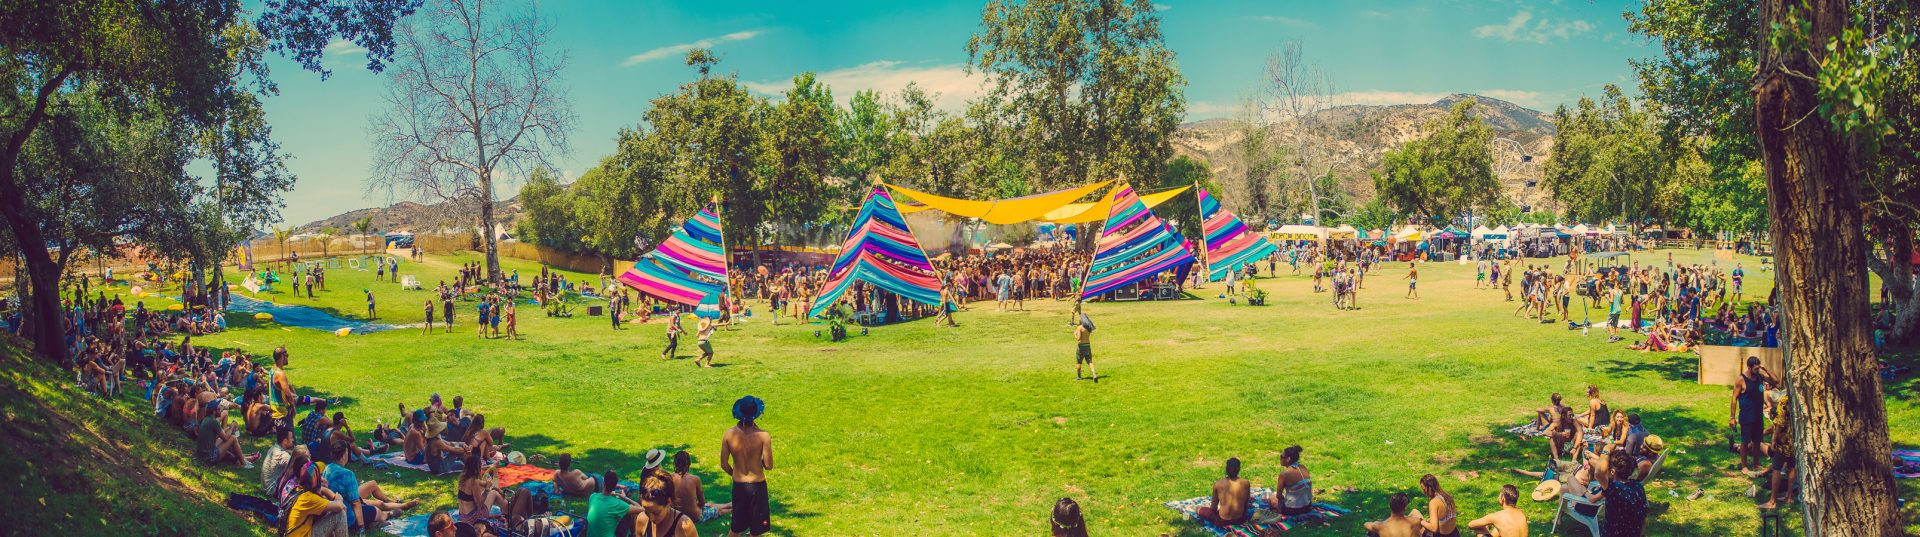 Woogie Pano